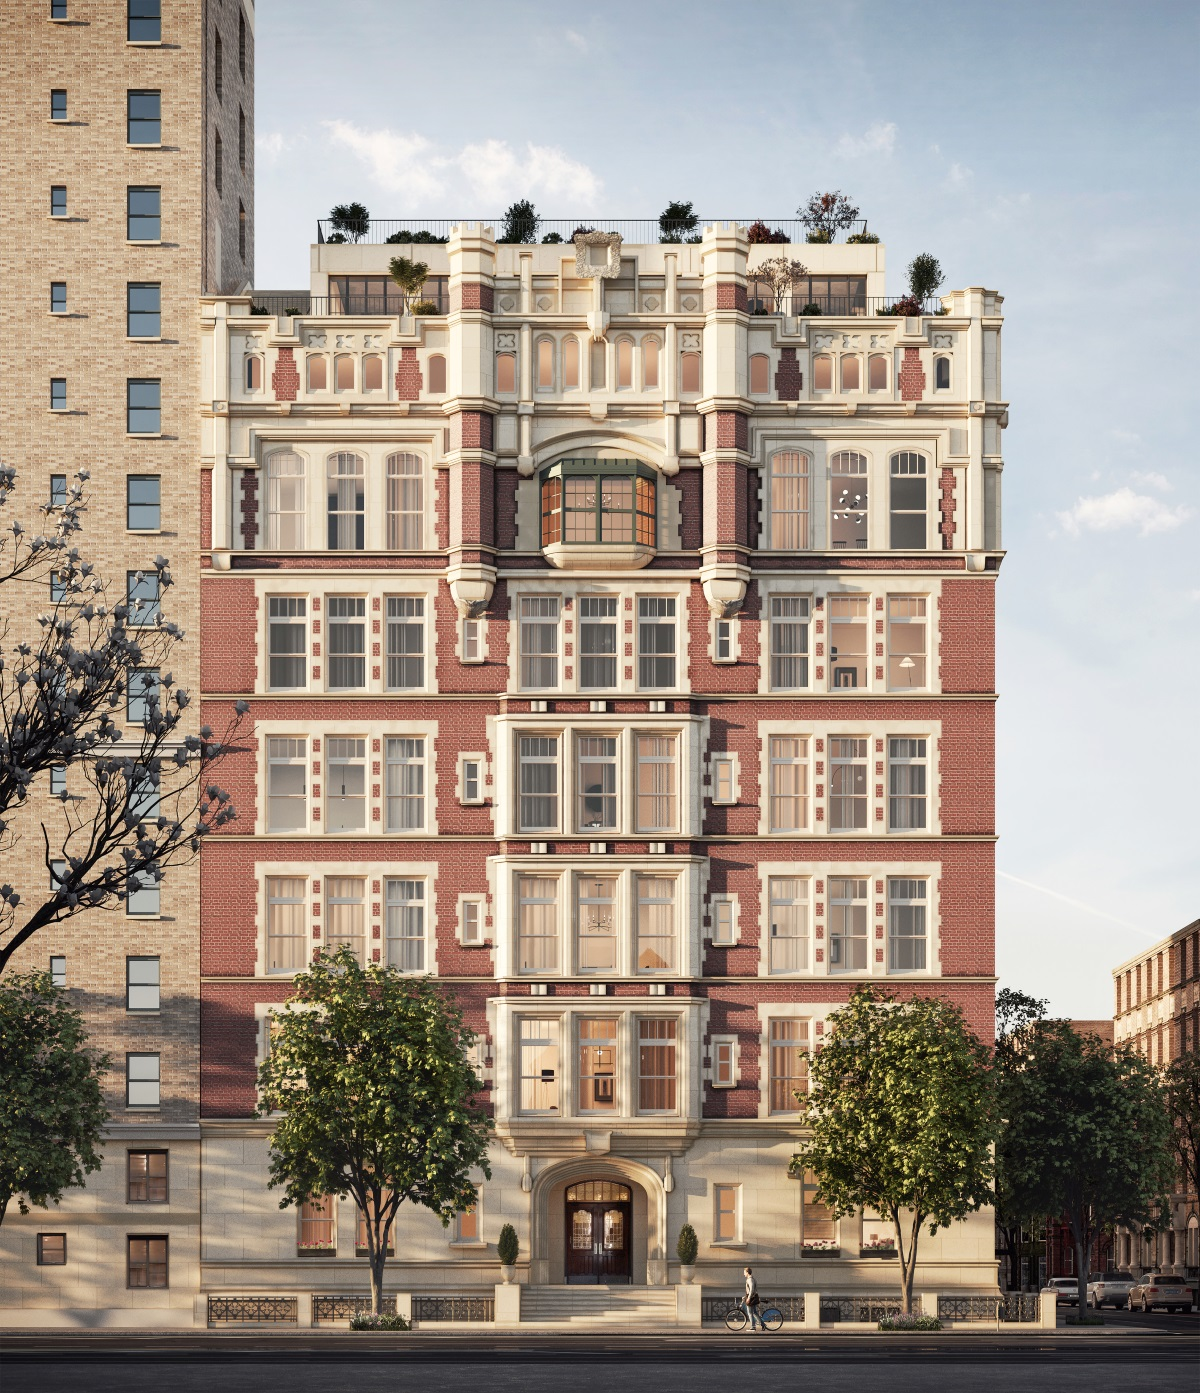 """The only new condominium in NYC with 18-1/2 foot ceilings in a 42-ft long Great Room, with towering arched windows, """"The Library"""" (2W) has 5 bedrooms, 5 en suite baths & a powder room. With a private landing & 3463 SF on two levels, the Library is one of 13 extraordinary, one-of-a-kind residences in Tamarkin Co.'s conversion of this landmarked former school. The kitchen features solid white fumed oak cabinets crafted by Christopher Peacock, with fluted glass cabinet fronts and Nanz hardware, and is open to the 37 ft Great Room providing a relaxed living and dining environment. Additional features in this absolutely gorgeous kitchen include white oak plank floors, polished Arabescato marble slab countertops and backsplash, vented Wolf 48"""" dual fuel range, Sub-Zero fridge & separate freezer, wine storage, microwave and warming drawers, two dishwashers, Lefroy Brooks faucets, garbage disposal, pot filler & more. On this floor are 3 en suite bedrooms, a powder room, large pantry, butler's pantry and laundry room. En suite secondary baths are outfitted with the highest quality stone & hardware.   Upstairs, on the mezzanine level, the light-filled, south-facing master features two walk-in closets, and a luxurious bath with Calacatta gold marble slabs, custom white oak vanities by Christopher Peacock, double sinks with Lefroy Brooks fixtures, Zuma soaking tub, radiant-heat floors, towel warmers, steam shower & Toto Neorest smart toilet. This level overlooks the Kitchen and Great Room, making for a dramatic double height experience.  Amenities include a 24/7 attended lobby with refrigerated storage, bike room, and stroller valet. The day lit gym features state-of-the-art equipment & the rec room features a wet bar, pool table, dart board, lounge chairs, and large-screen TV. The Library (2W) is offered with 76 SF of private storage.  The complete offering terms are in an offering plan available from the sponsor, file #CD17-0364."""